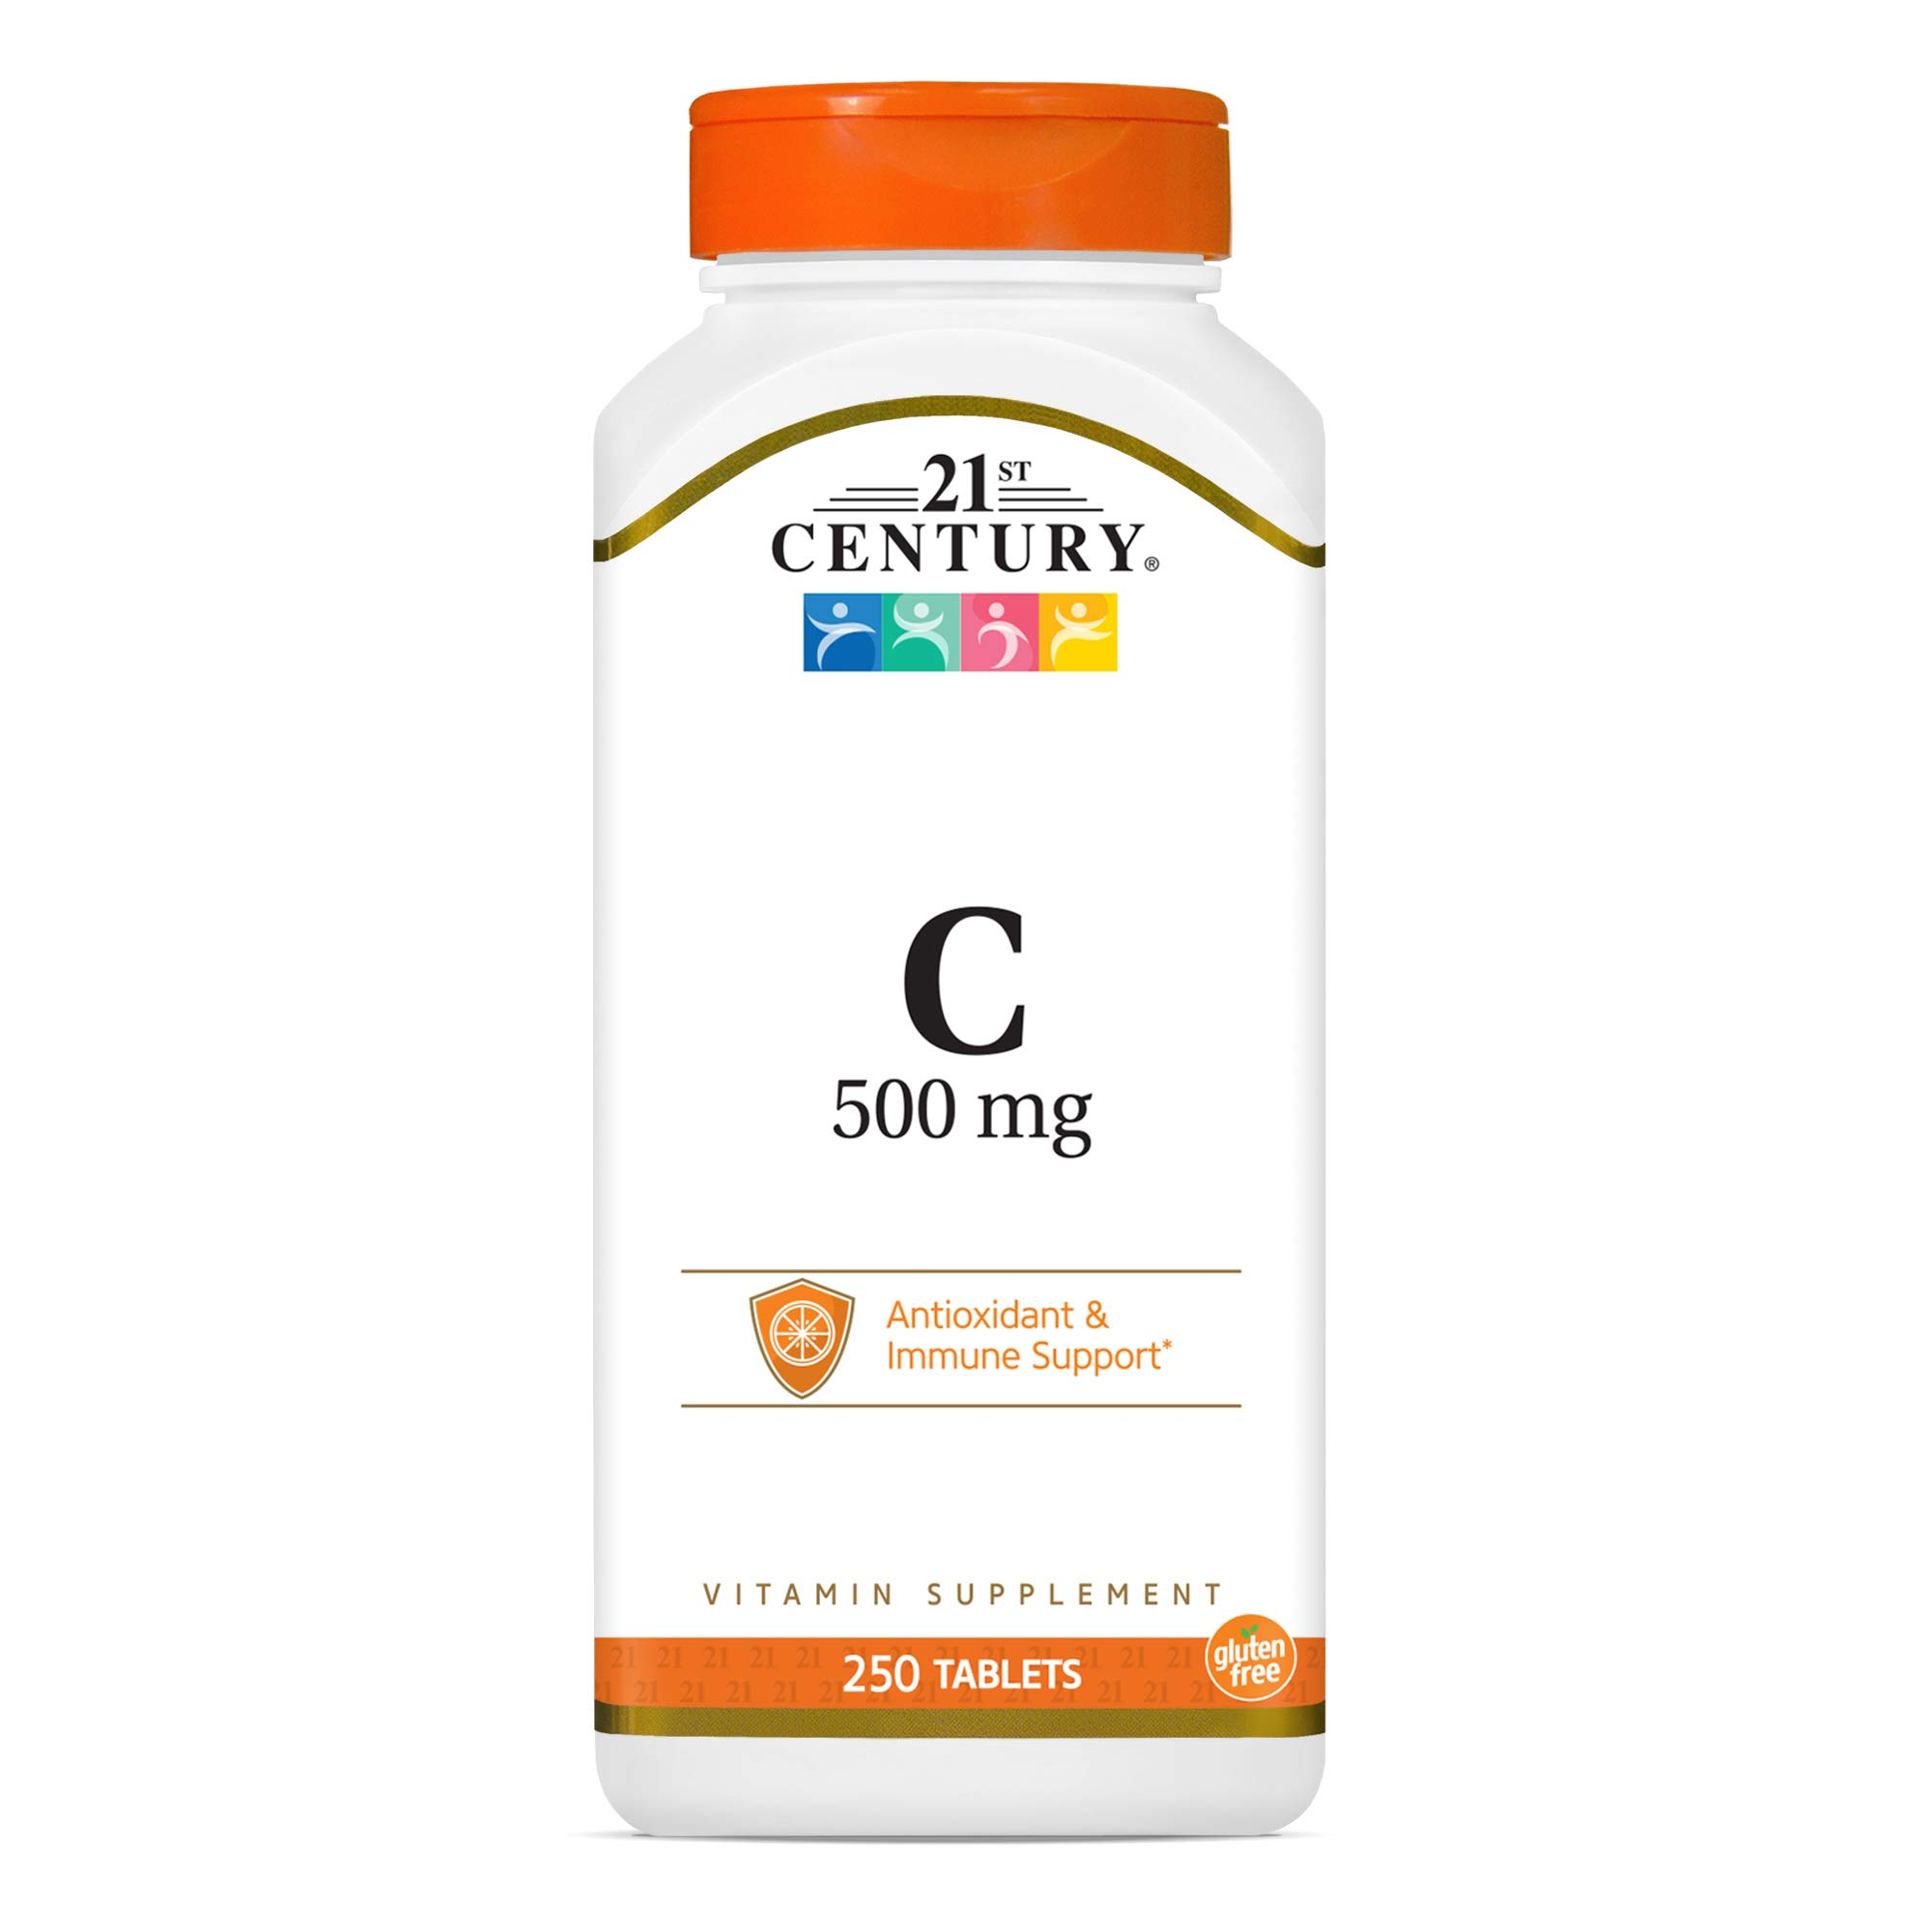 21st Century C 500 mg Tablets, A3841 No Artificial Flavor 250 Count